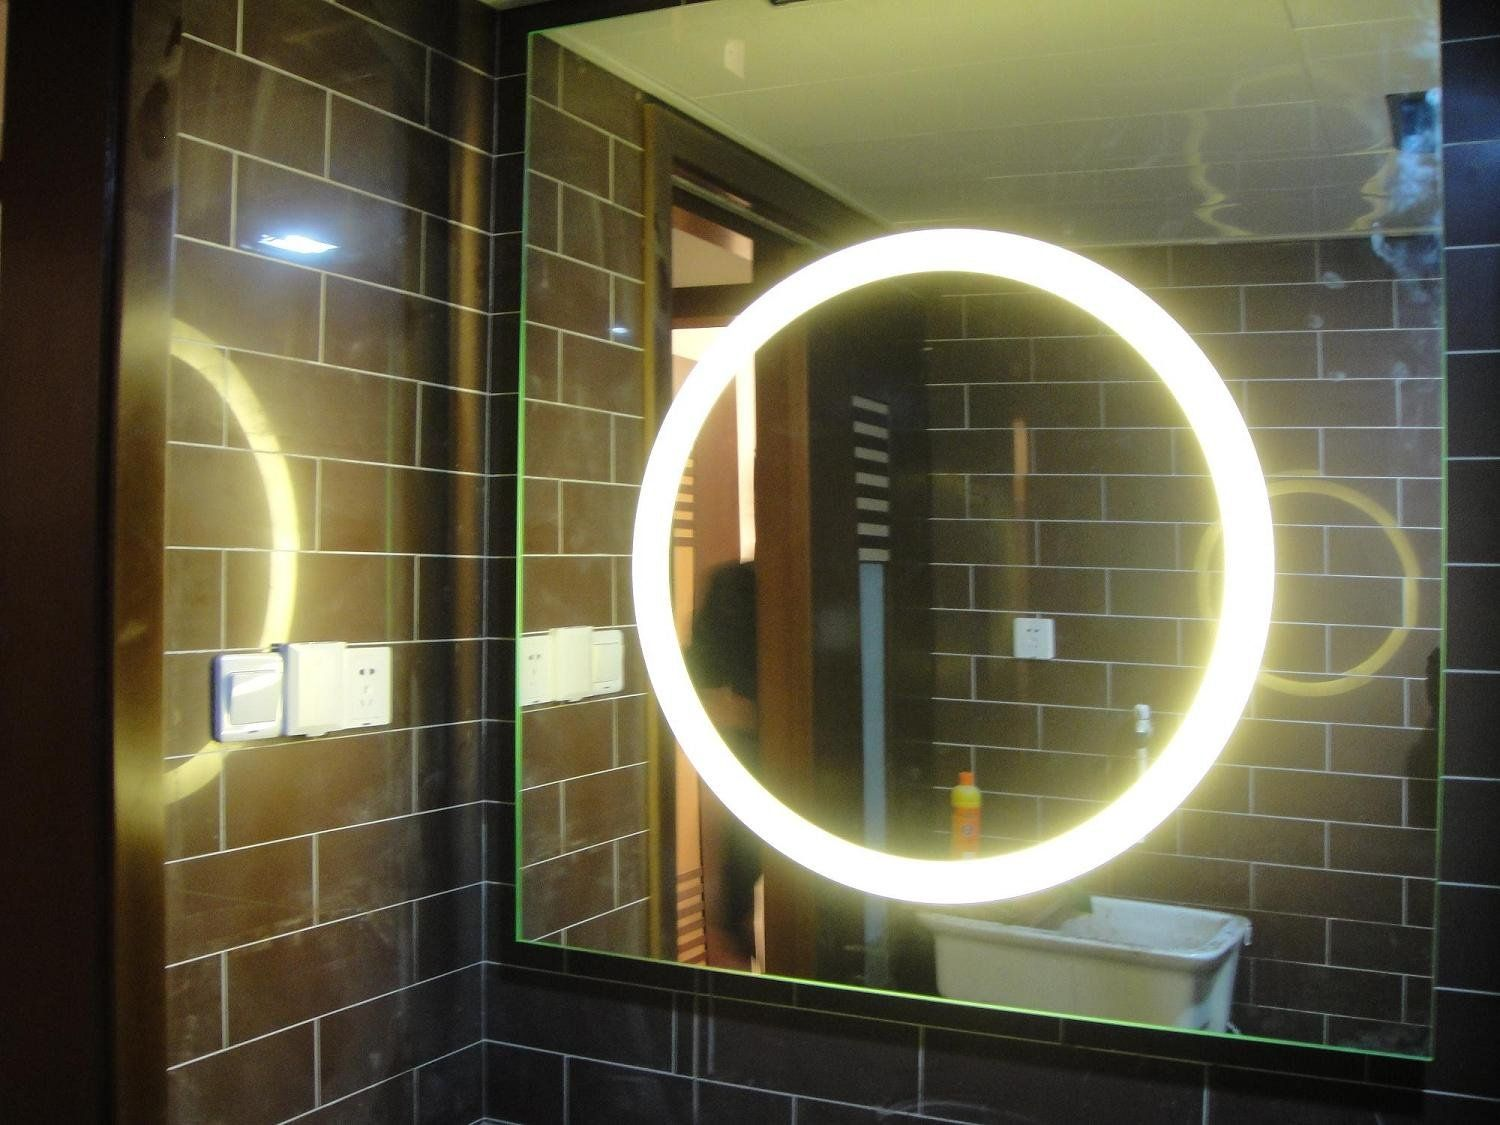 bathroom vanity mirrors with lights. Smart Vanity Mirror With Round White Lighting Blend Brown Bricks Wall Design Idea Bathroom Mirrors Lights M